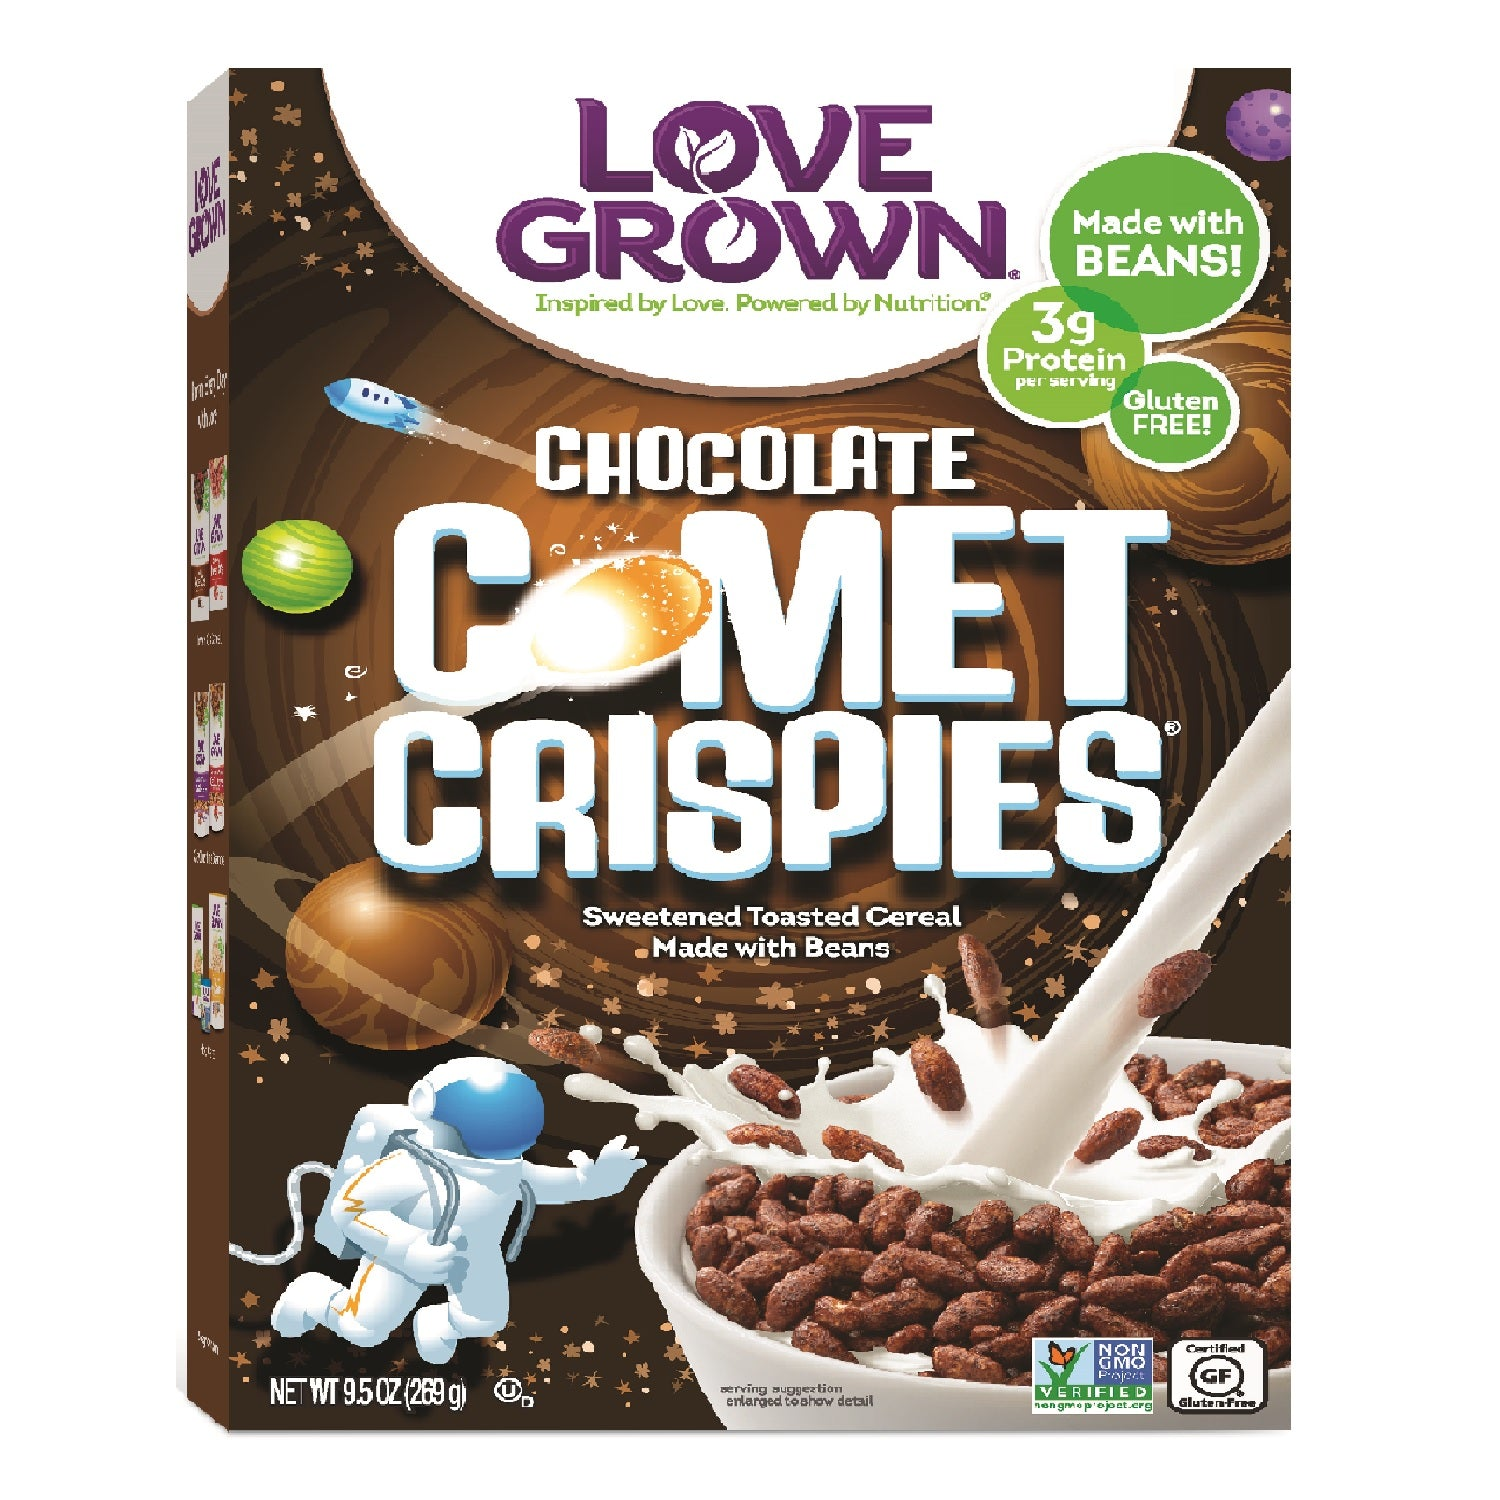 Love Grown Comet Crispies- Chocolate Flavour, 269g